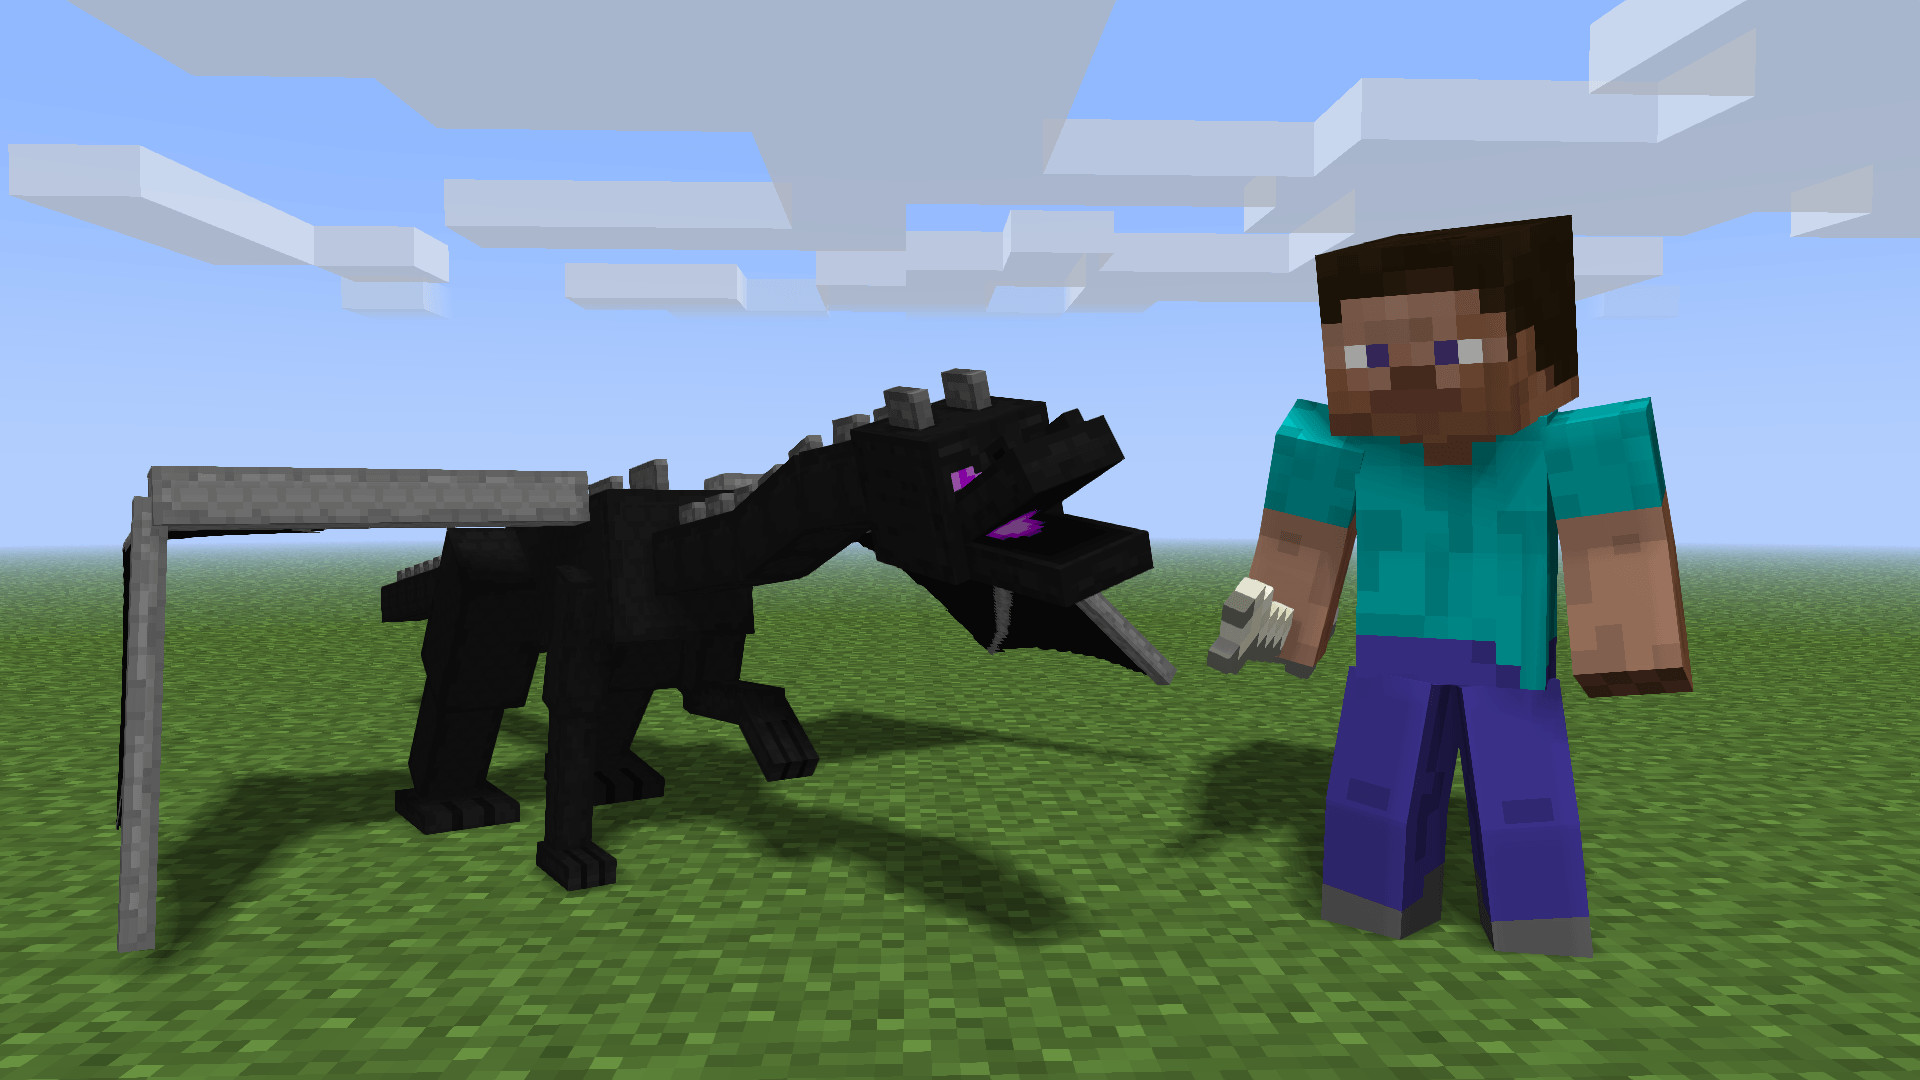 Res: 1920x1080, How to train your EnderDragon! -(wallpaper)- - Wallpapers and art .